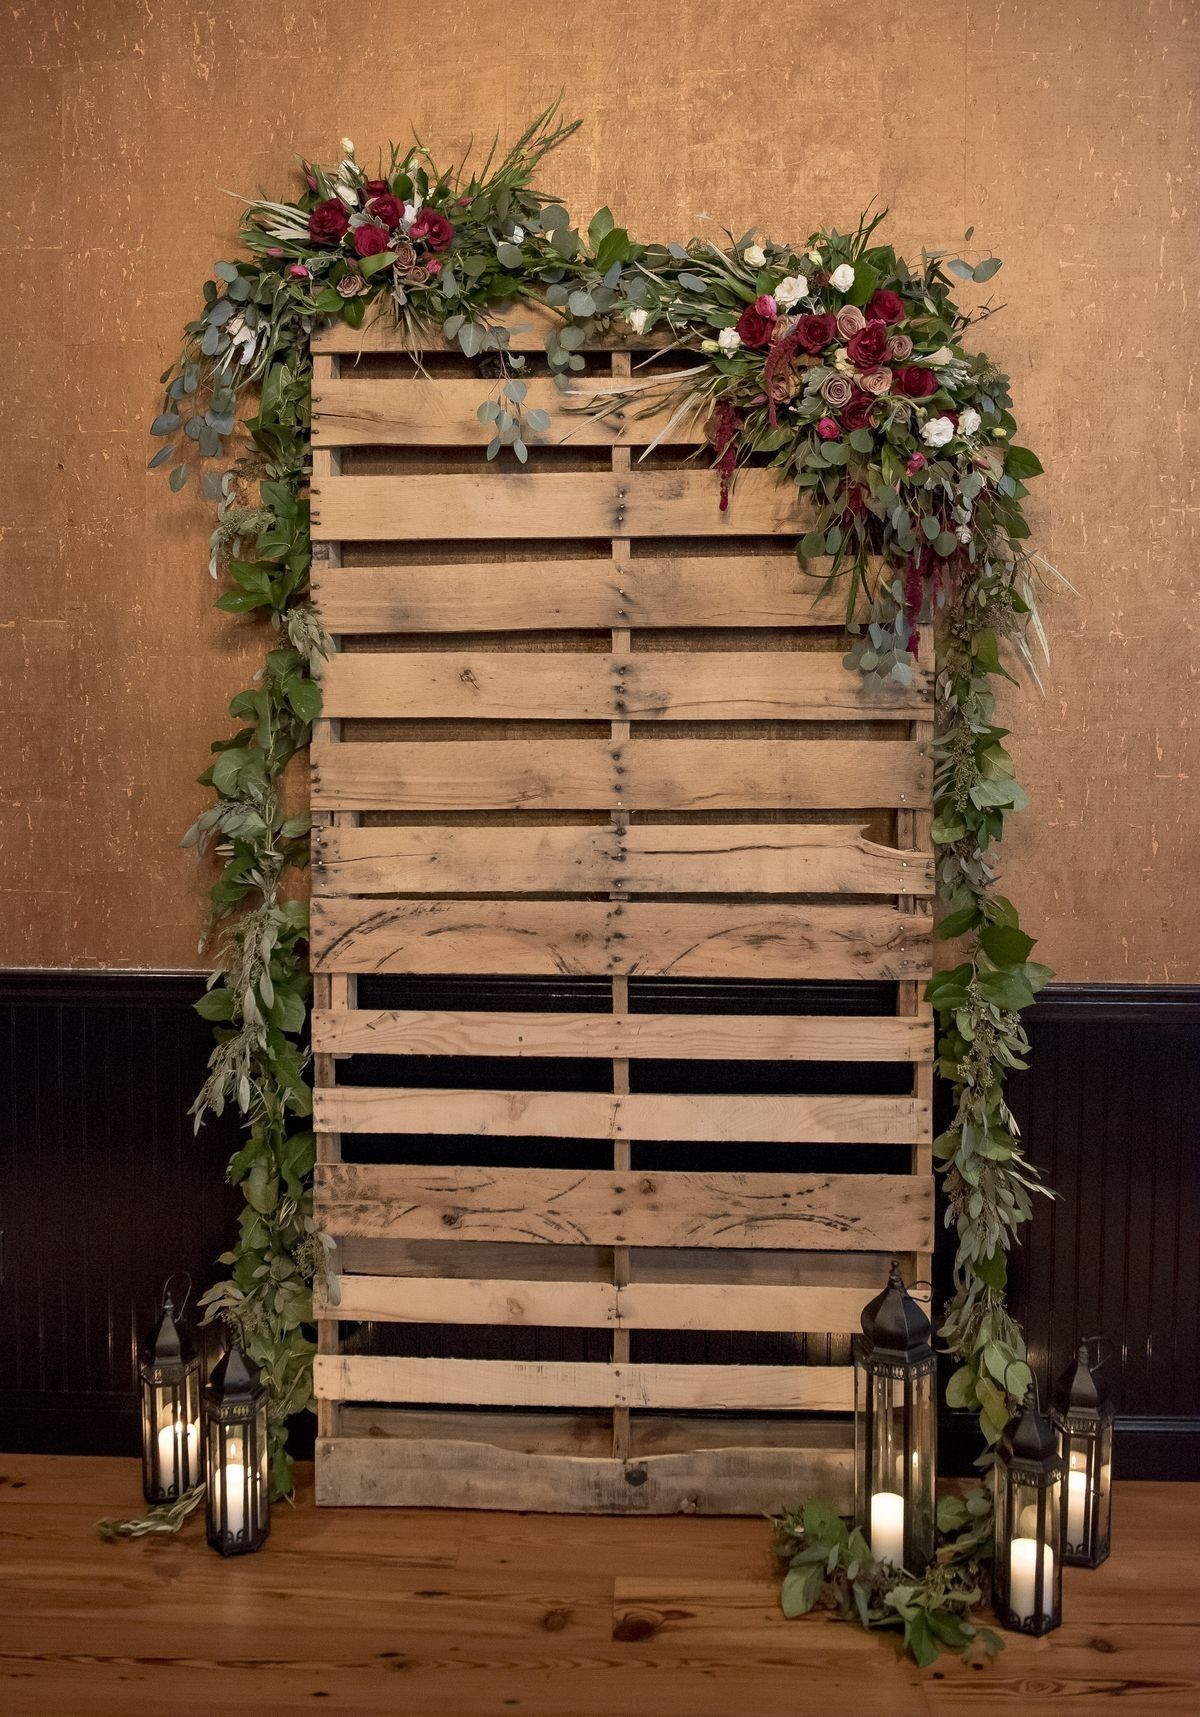 Pallet alter w garland ours only has small garland and then